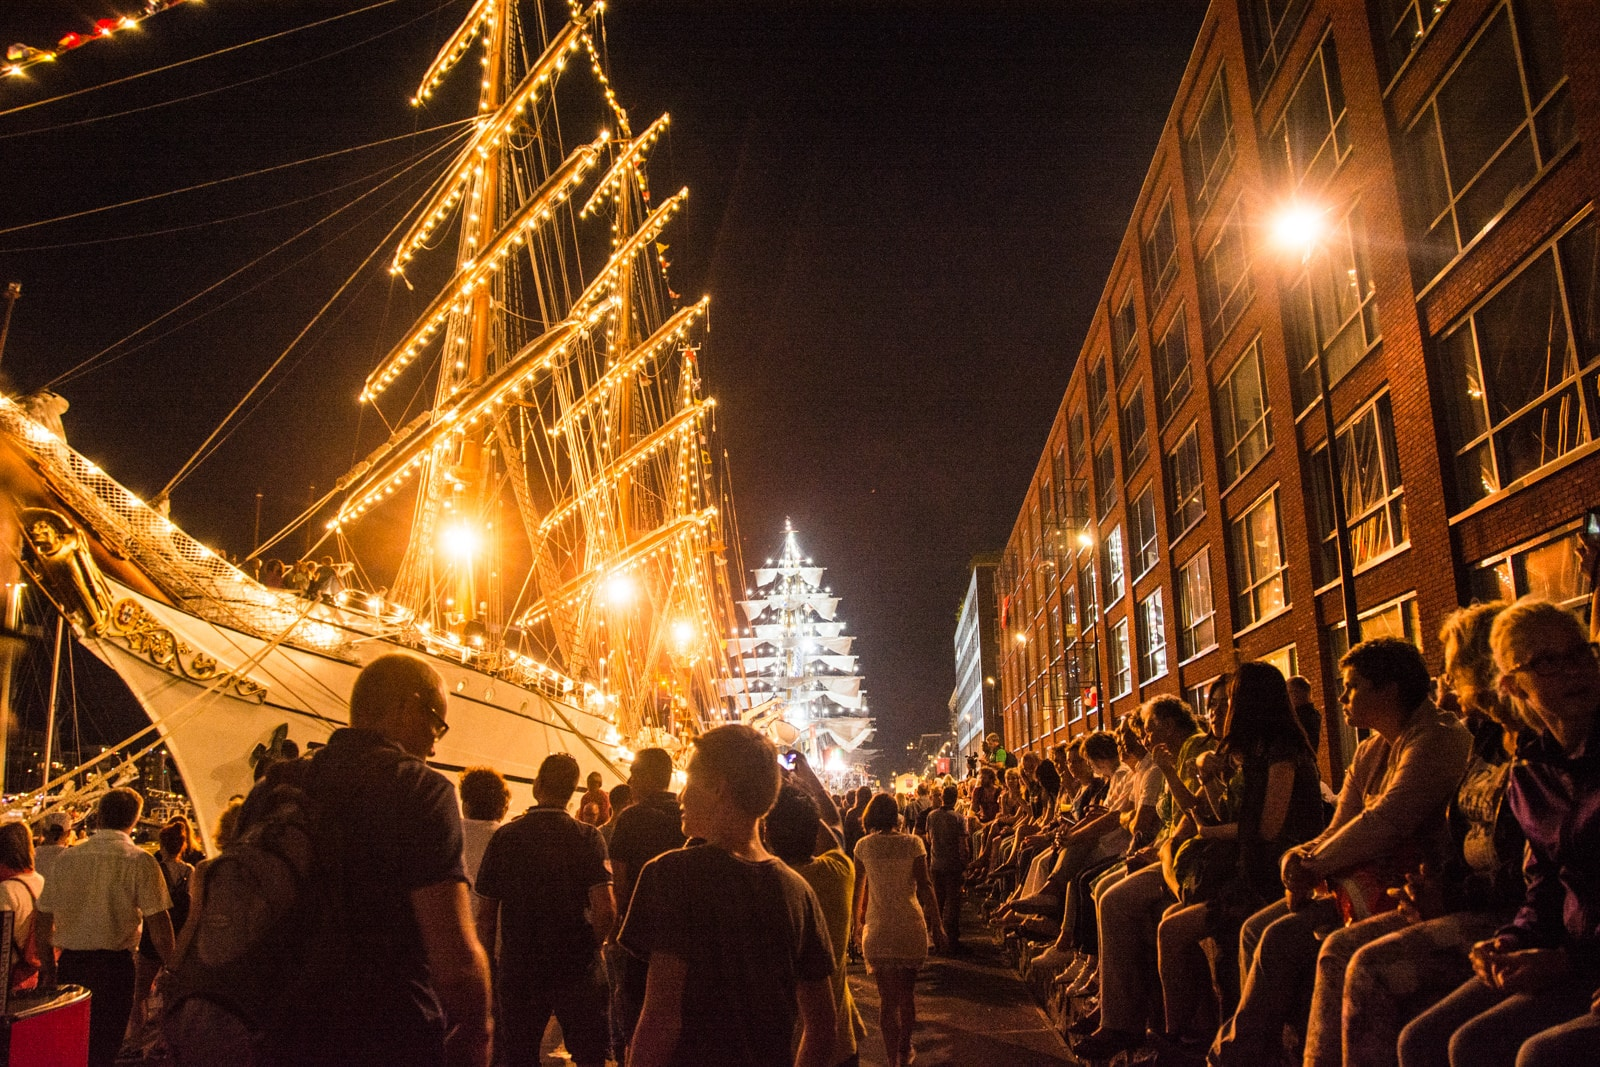 SAIL Amsterdam 2015 – Free events to save money for travel